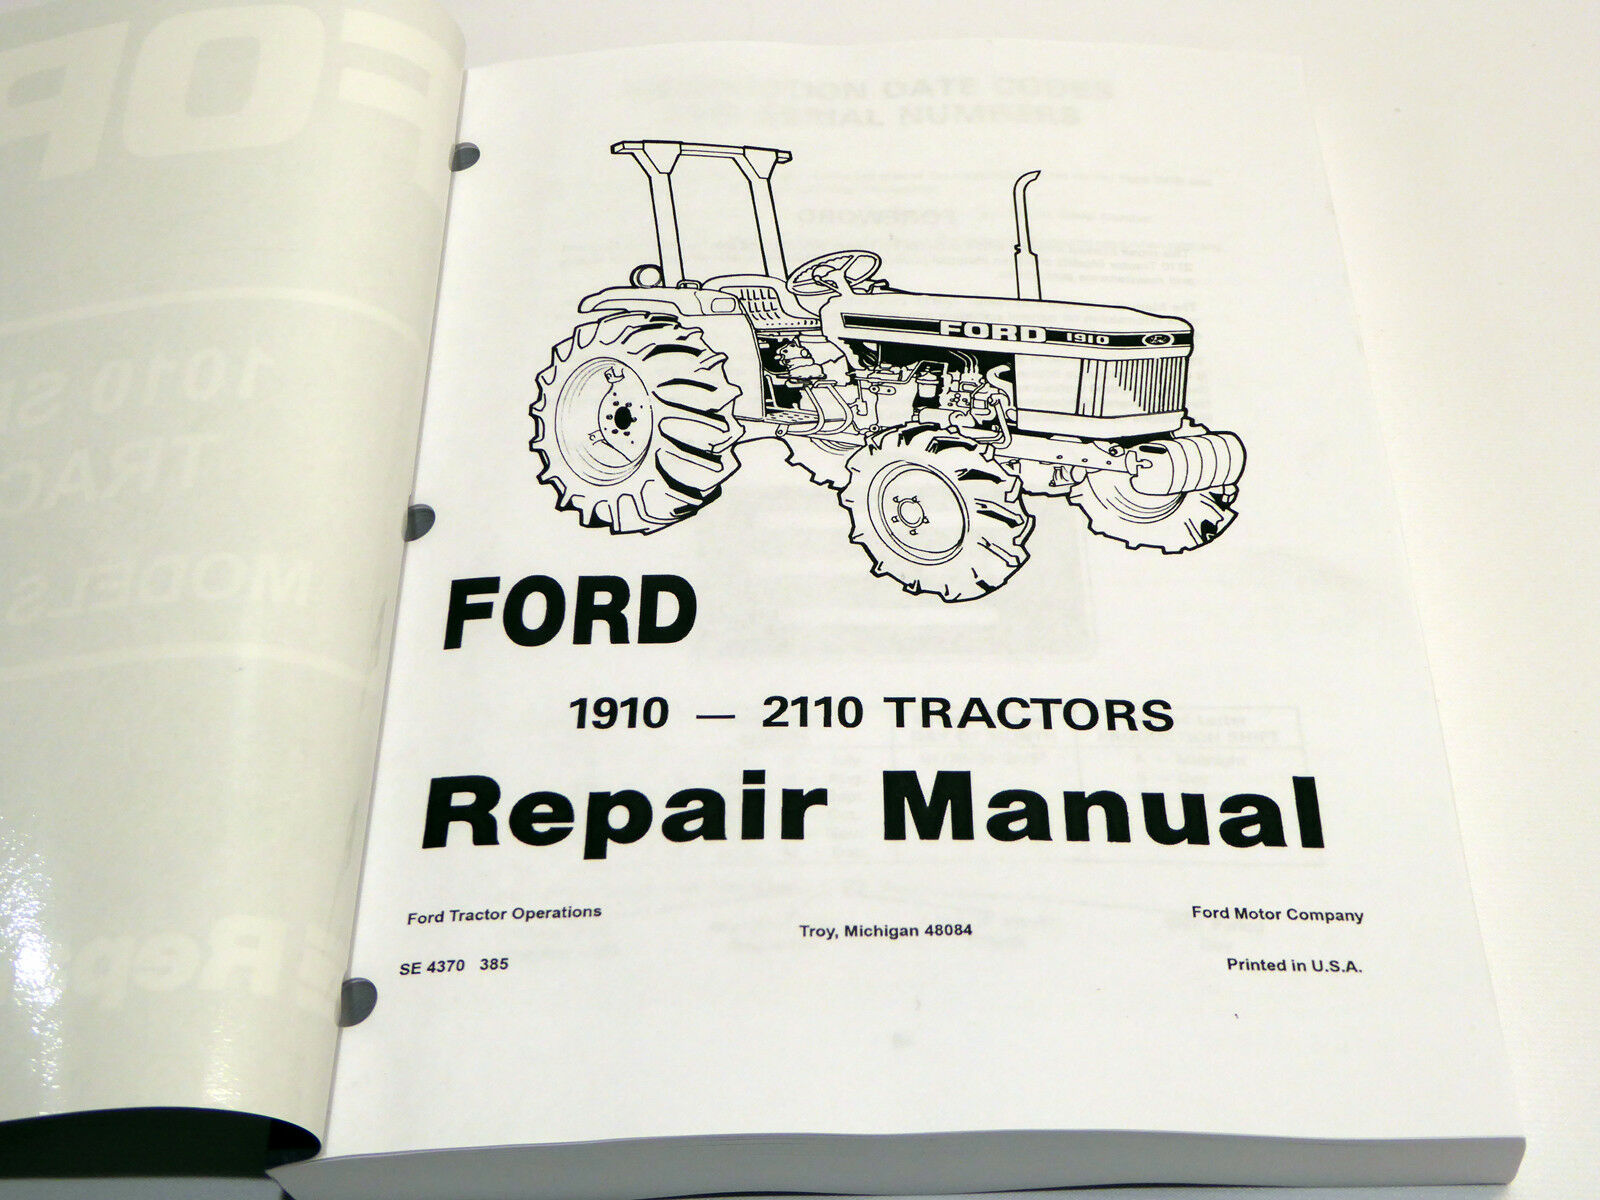 ford 1010 series 1910 2110 tractor service manual repair shop book w rh ebay com Ford 1910 Tractor Parts Diagram 1910 Ford Tractor Operators Manual